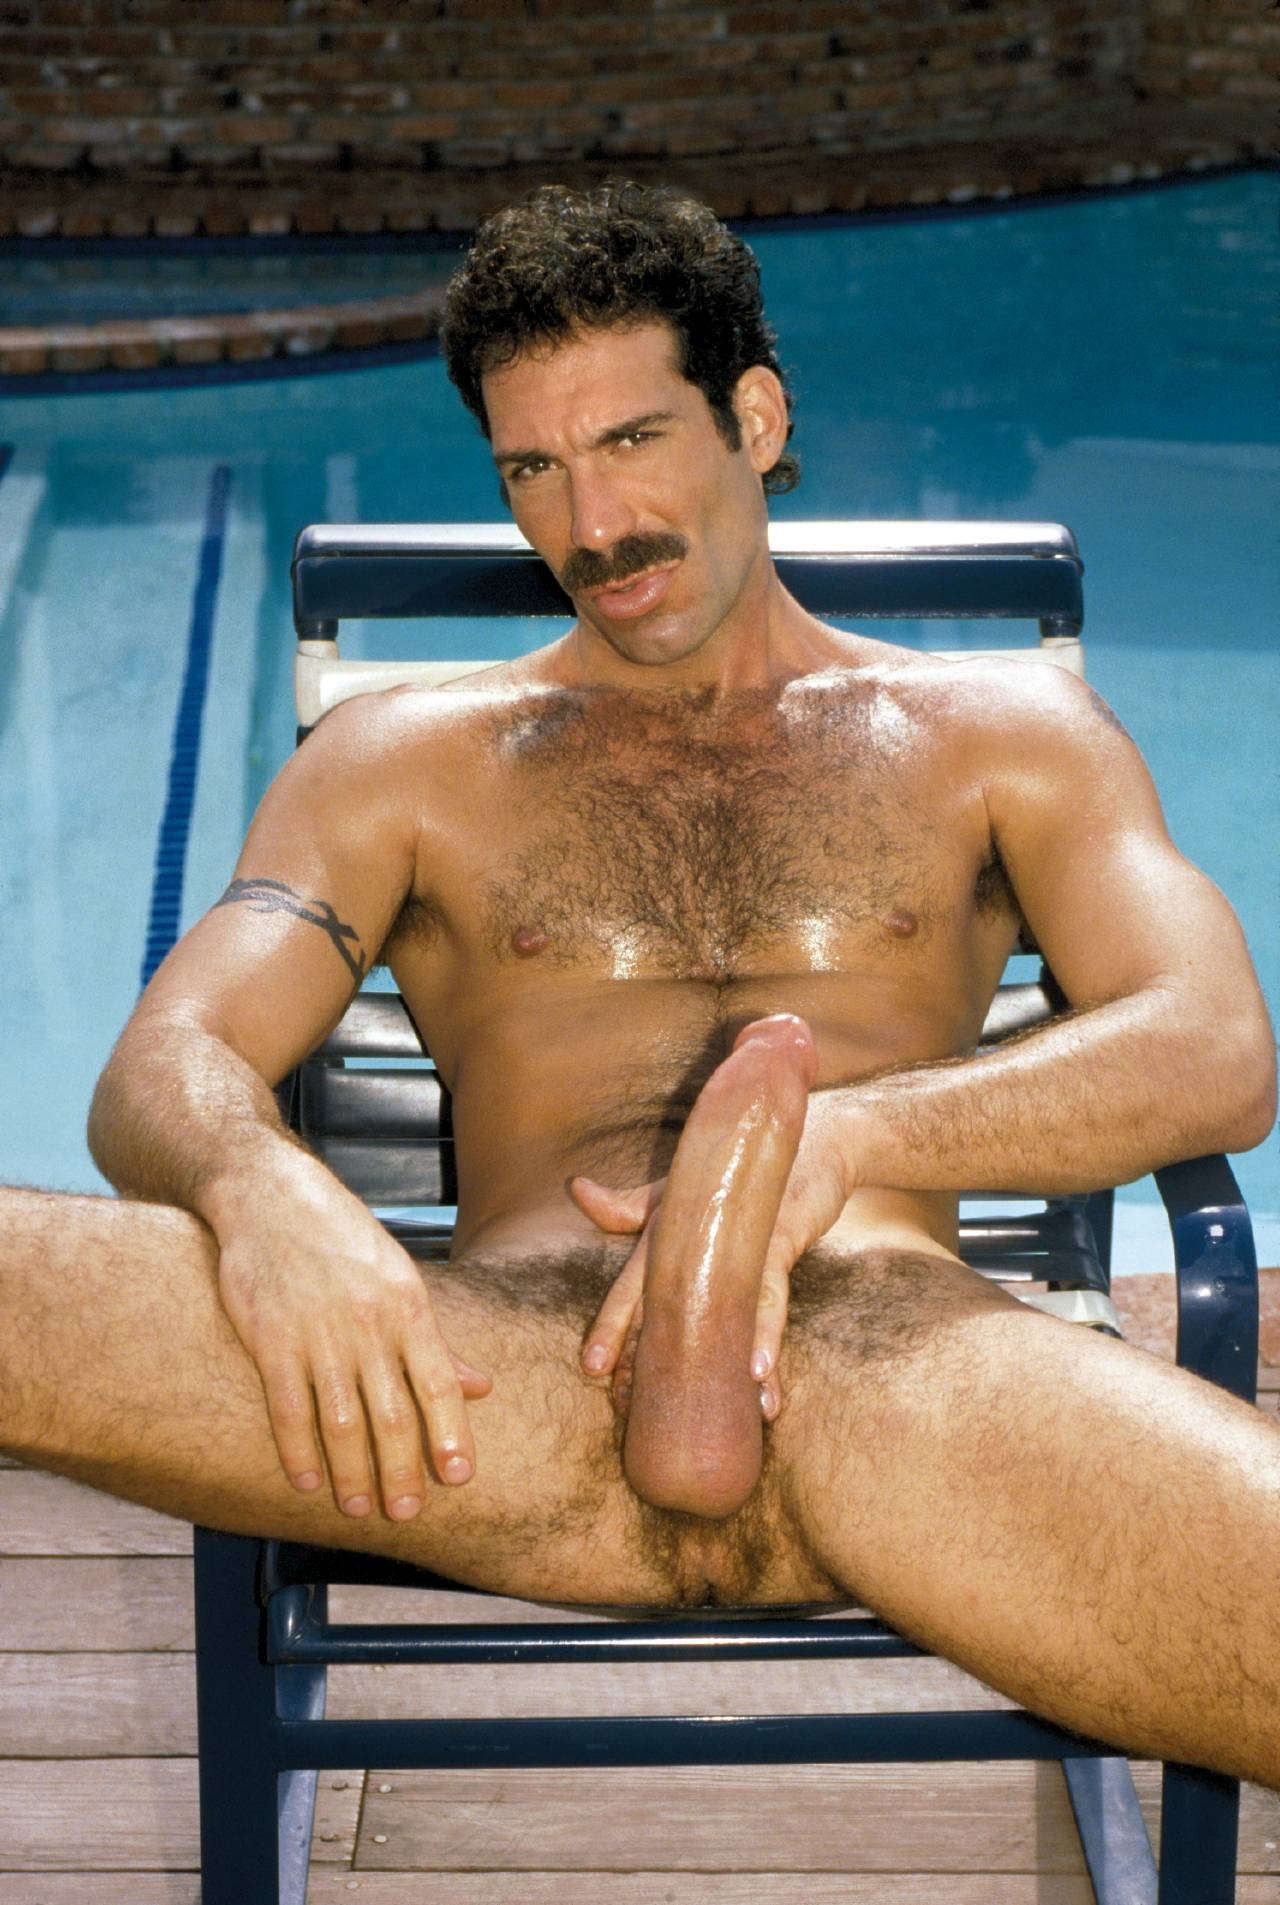 from Abram chad douglas gay masculine mustachioed